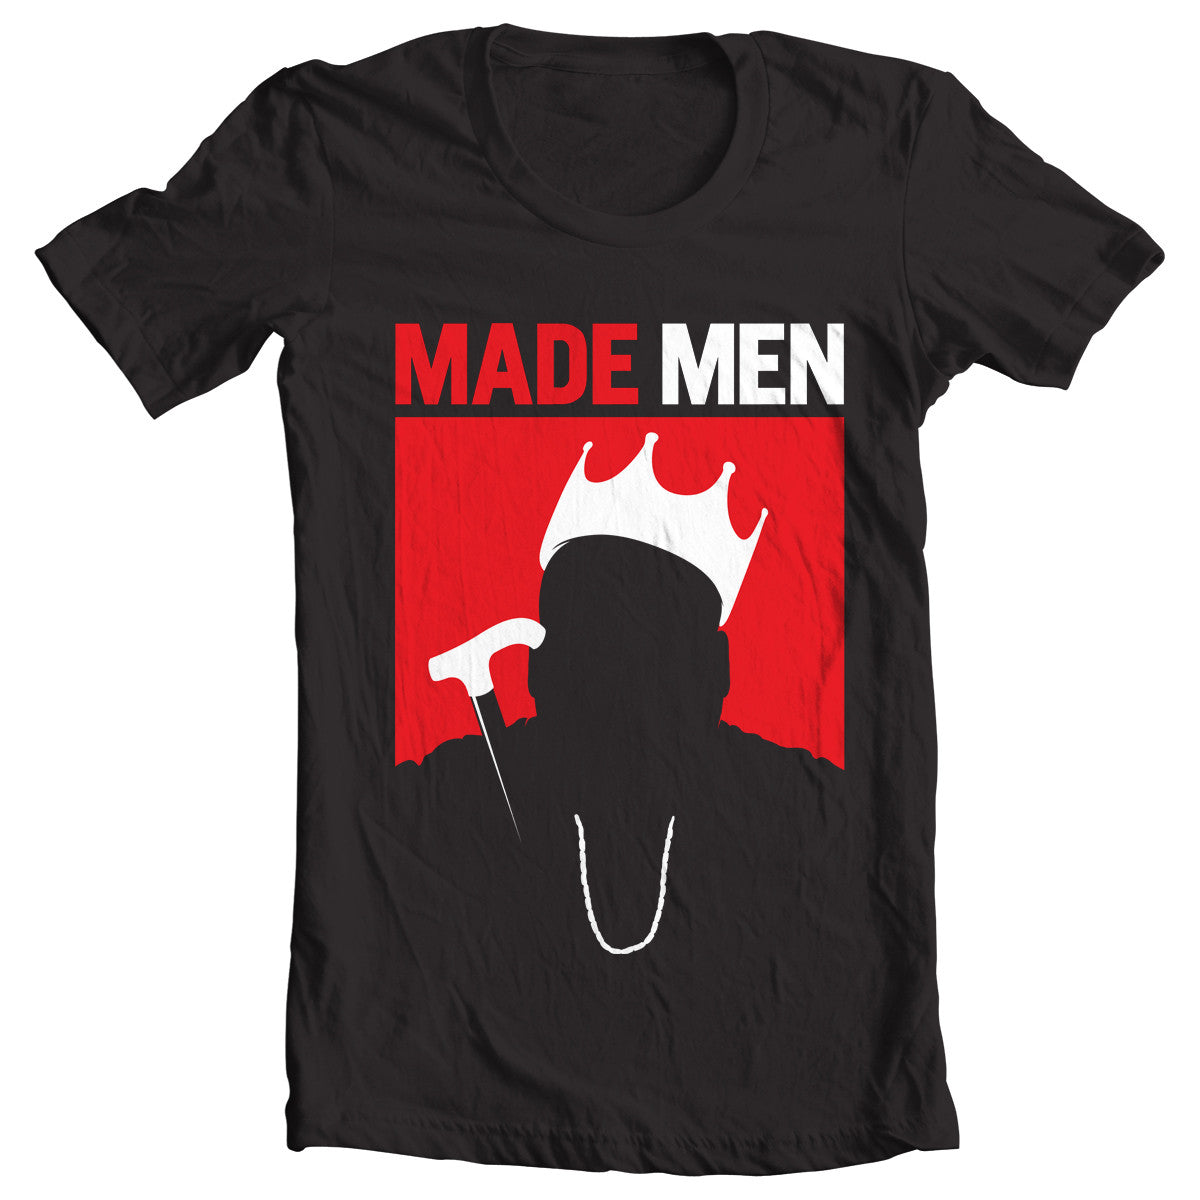 Made Men # 2 t-shirt